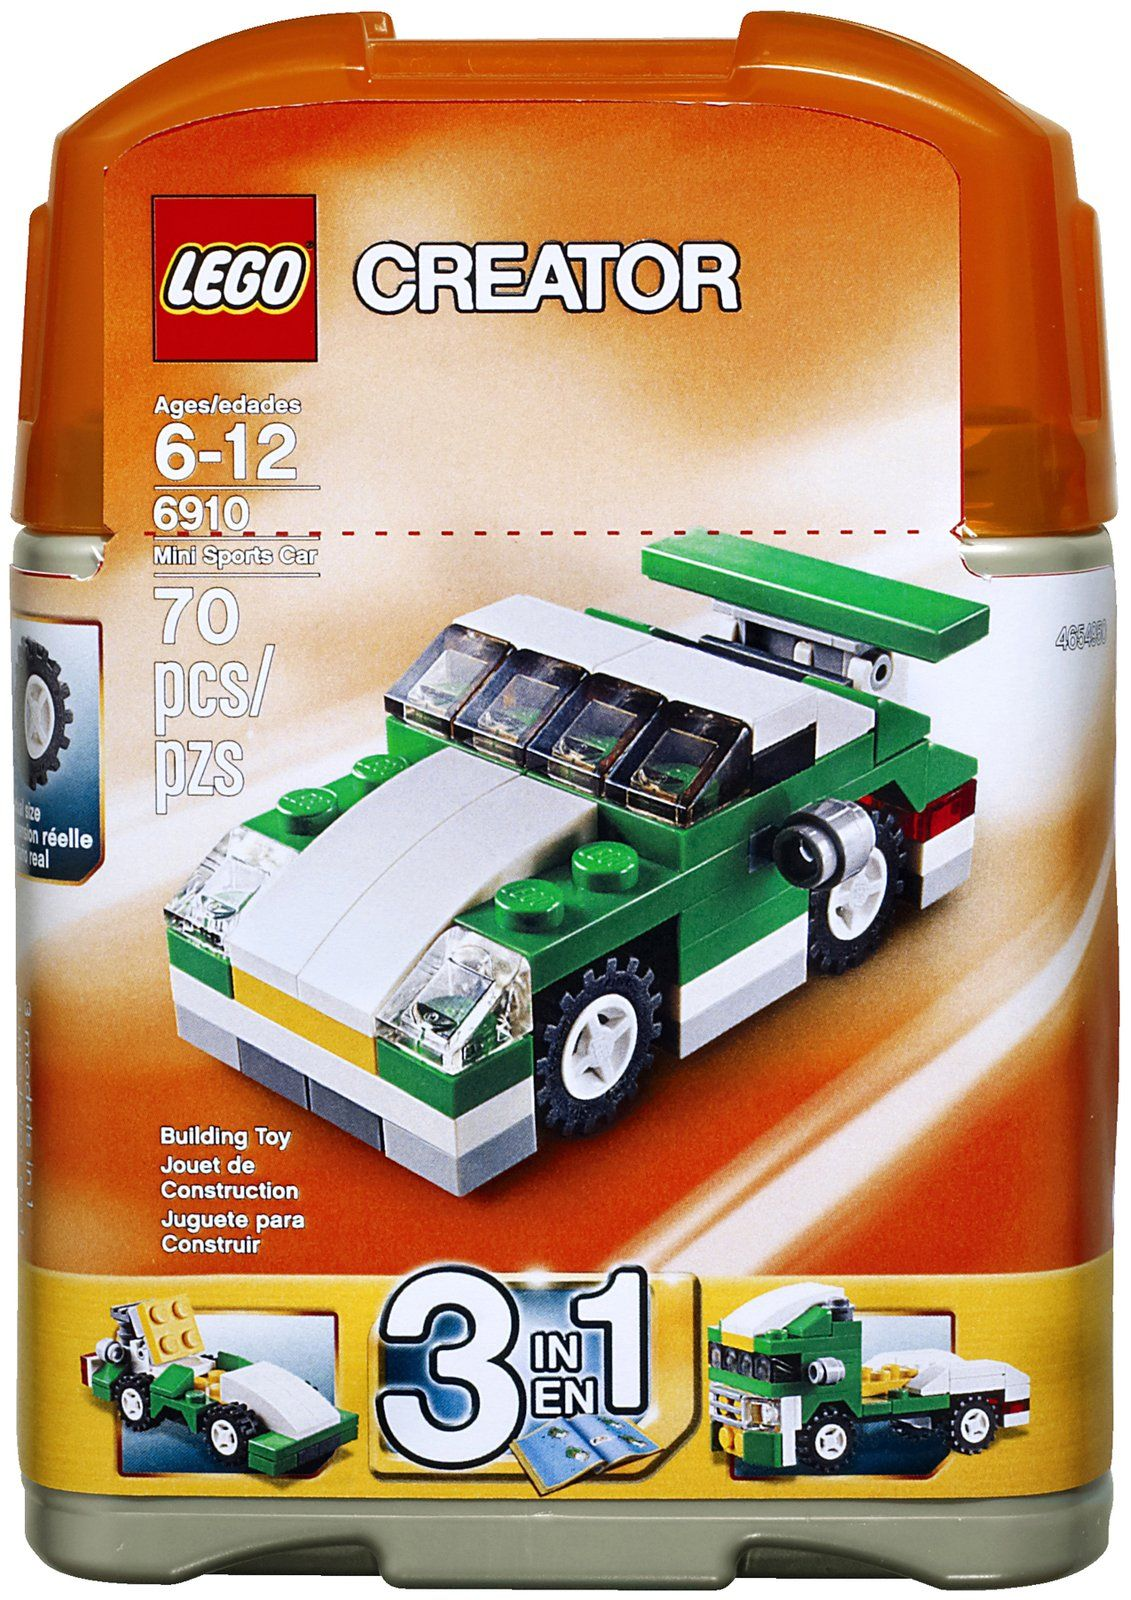 LEGO Creator Mini Sports Car 6910 Ready...go! Race through